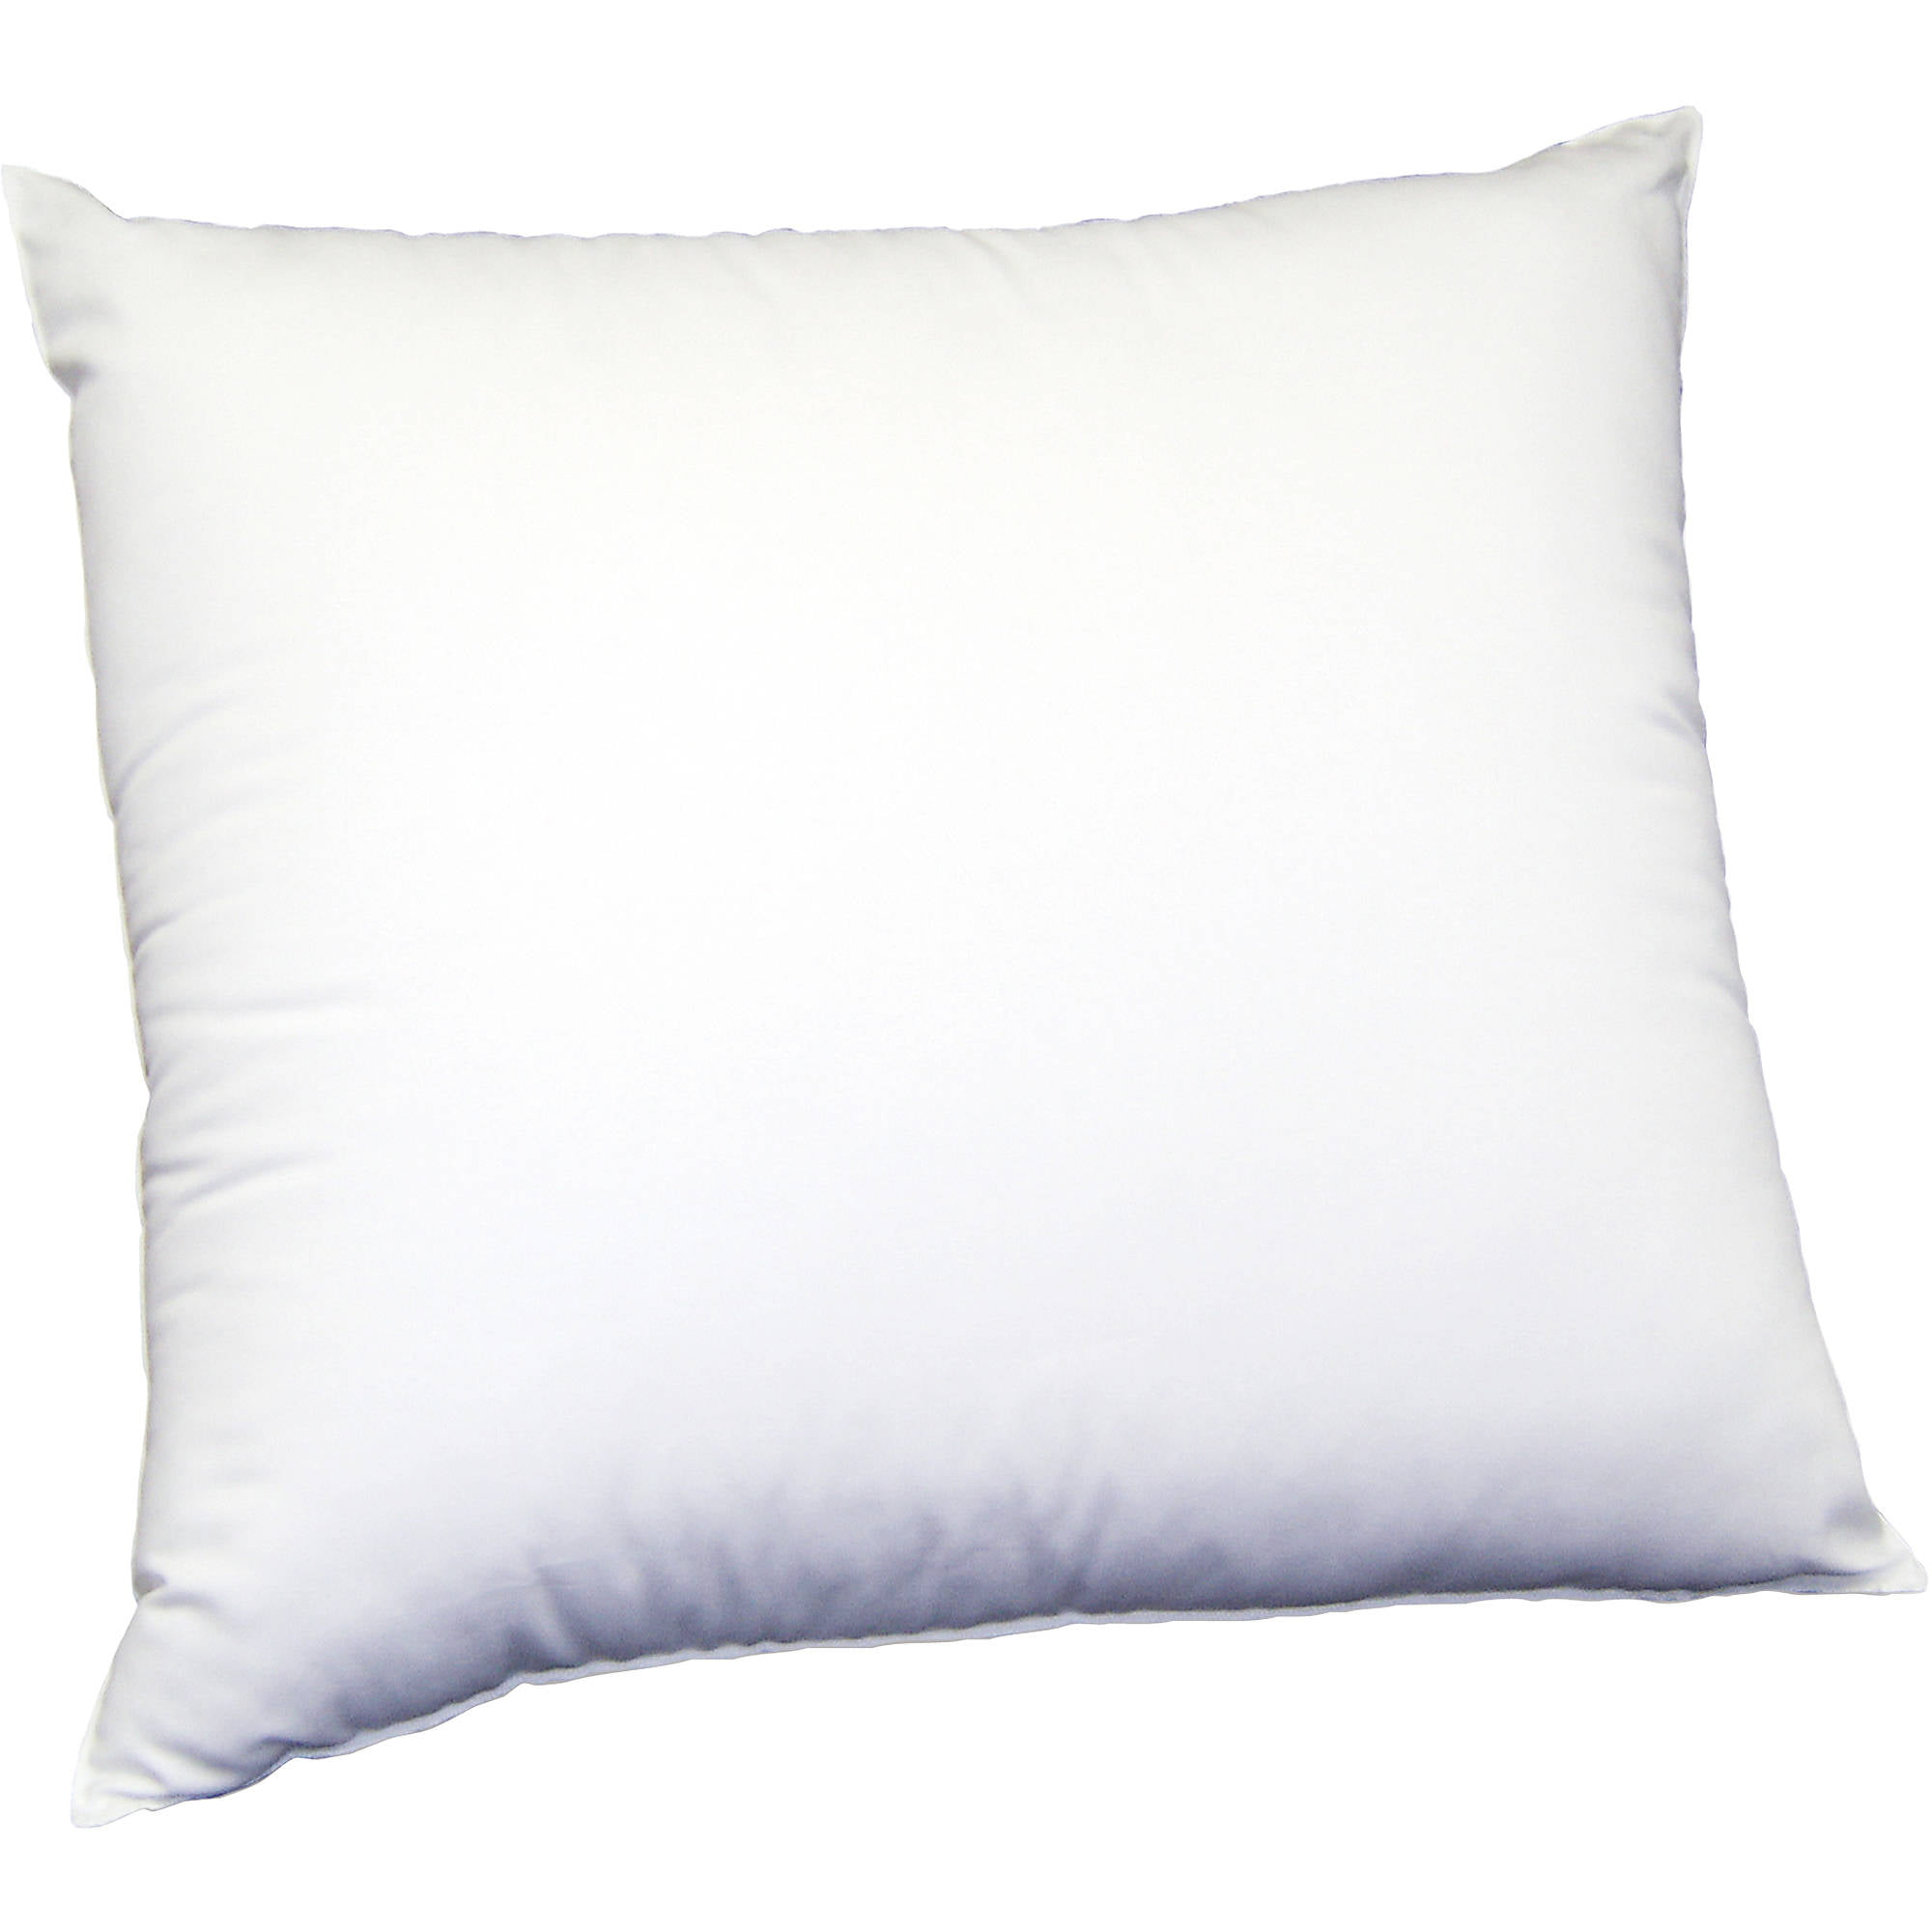 Ultrasoft Euro Square Decorative Sham Pillow White : Beautyrest Euro Pillow for Square Decorative Shams at Home Territory